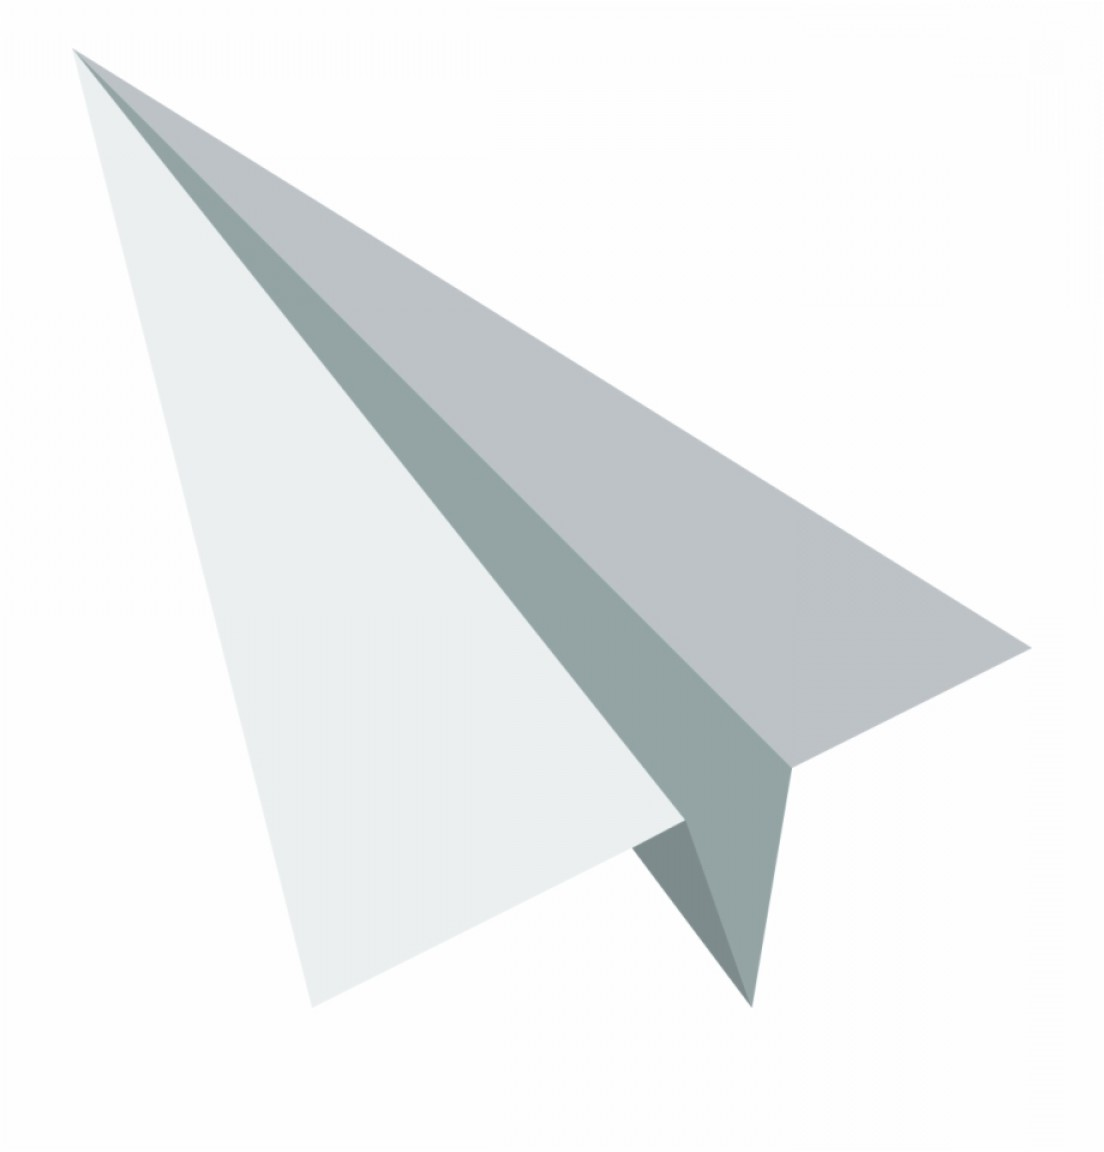 Crinkled Paper Vector: Brwwdownload Svg Download Png White Paper Plane Vector